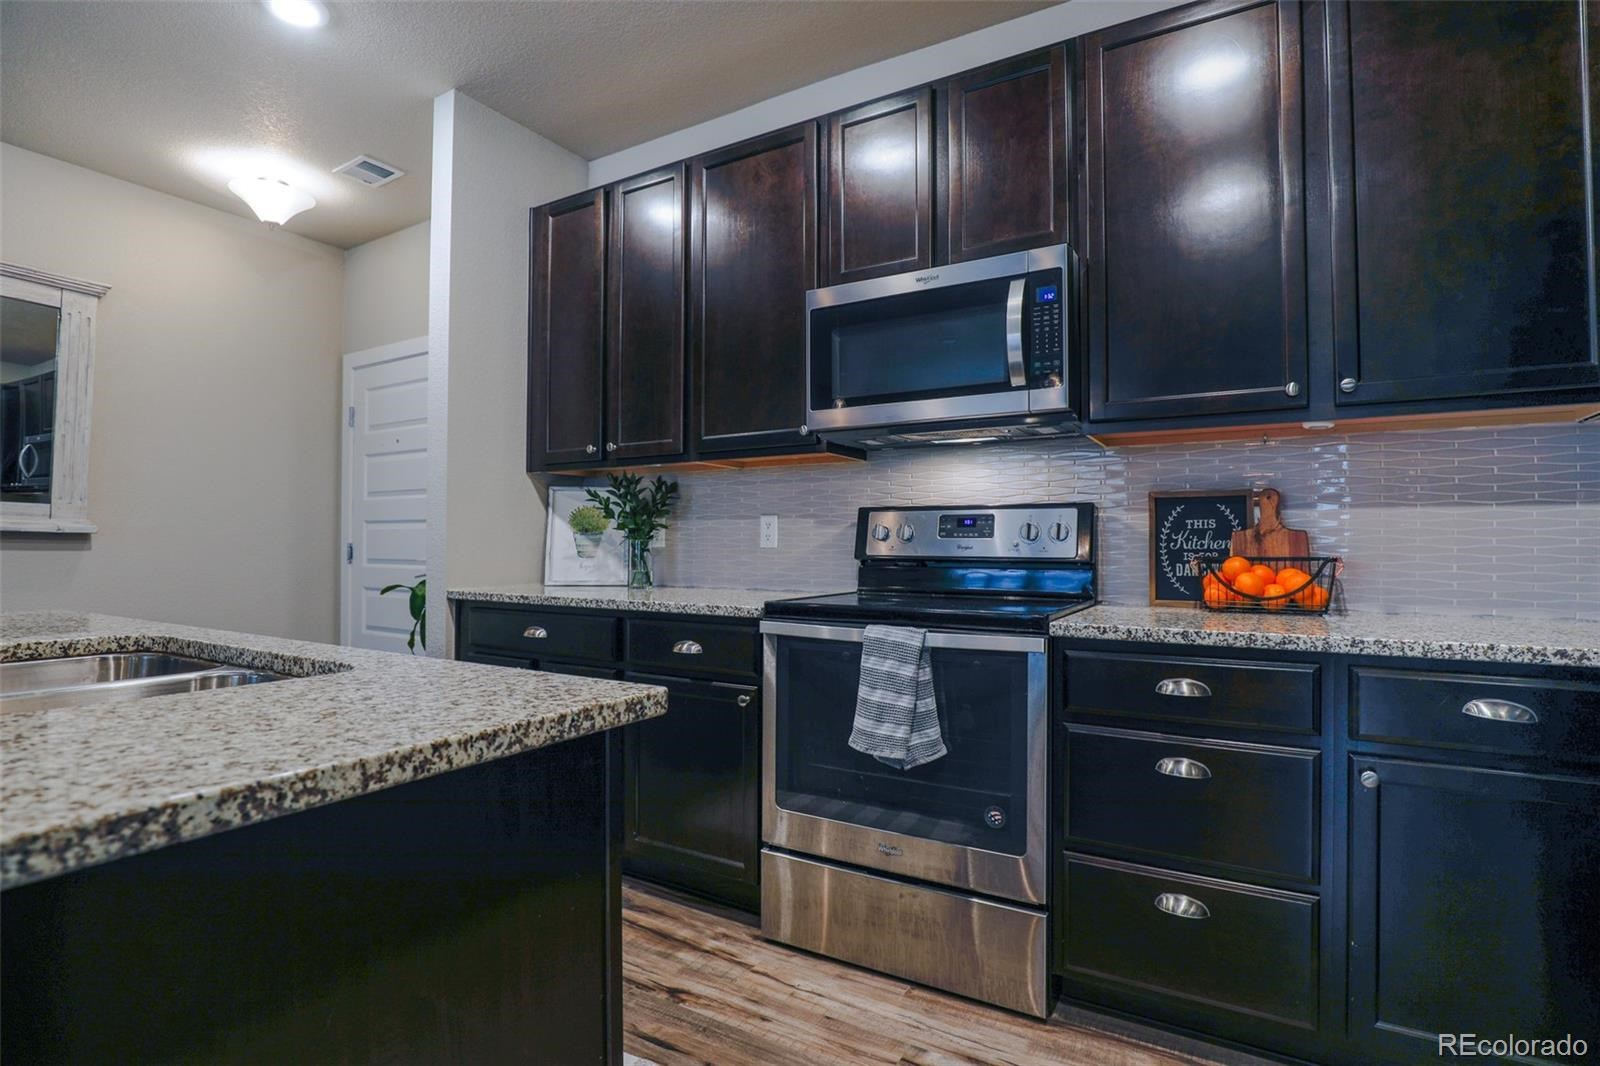 MLS# 8121591 - 6 - 15345 W 64th Lane #207, Arvada, CO 80007